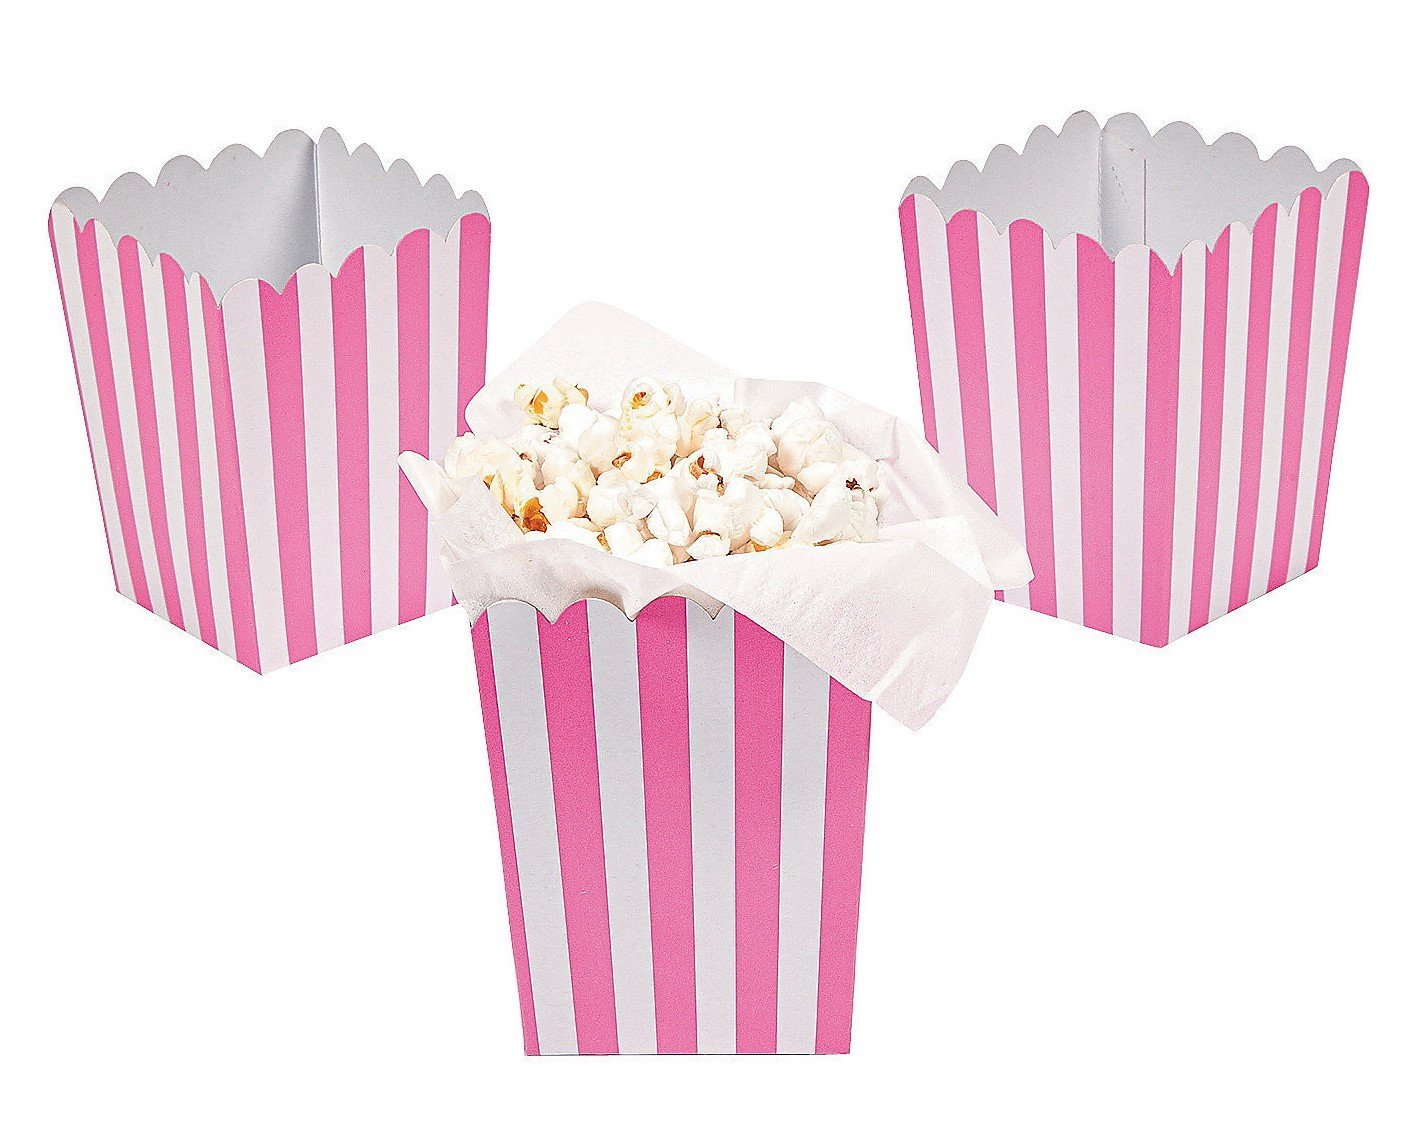 24 Mini Candy Pink Striped Popcorn Boxes - Party Supplies - Walmart.com